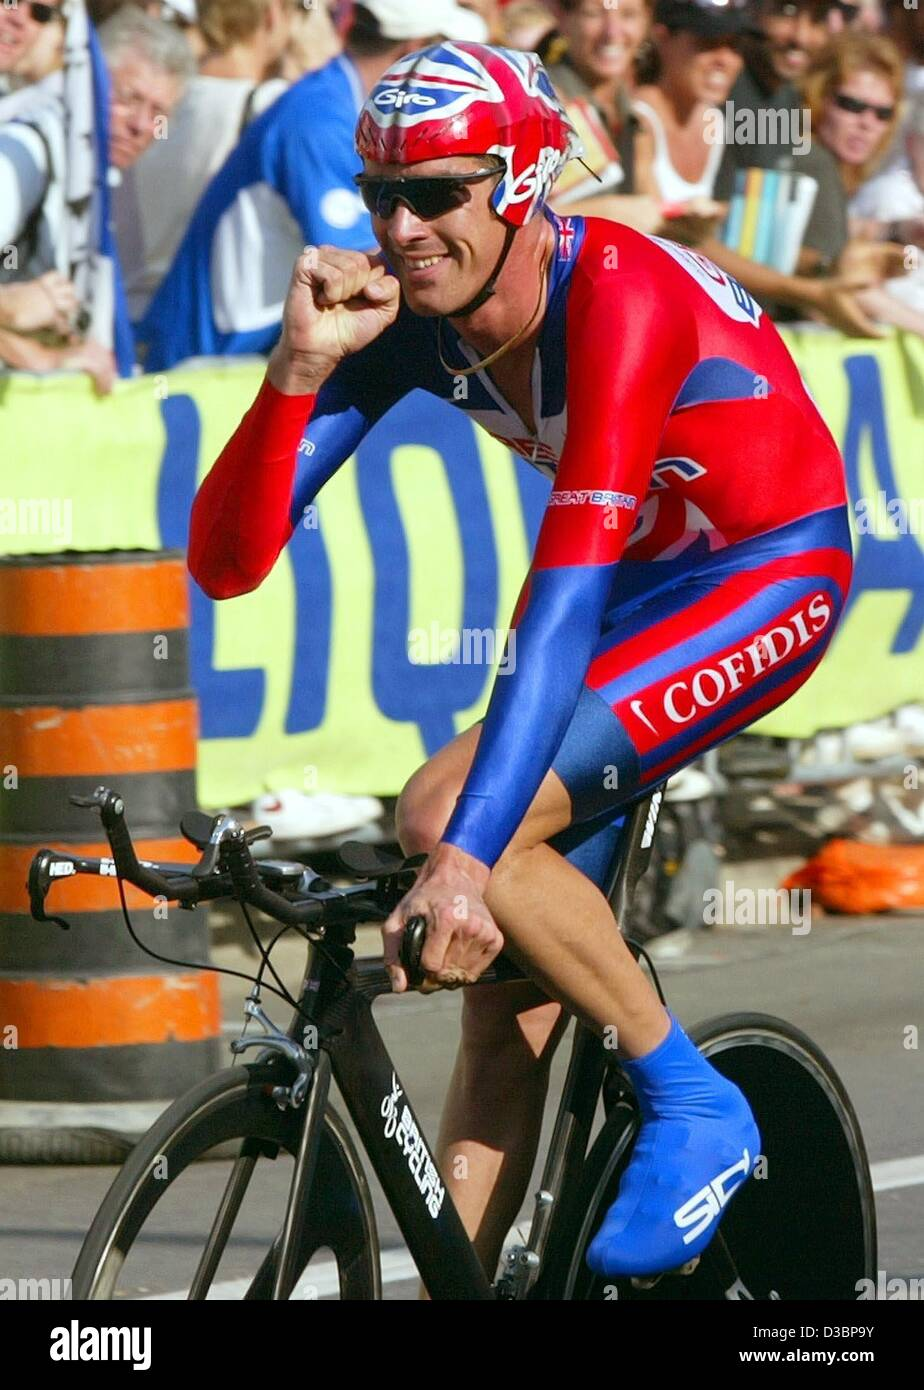 (dpa) - 26-year-old cyclist David Millar from Scotland (C) cheers after winning the time trial race over 41.2 km - Stock Image